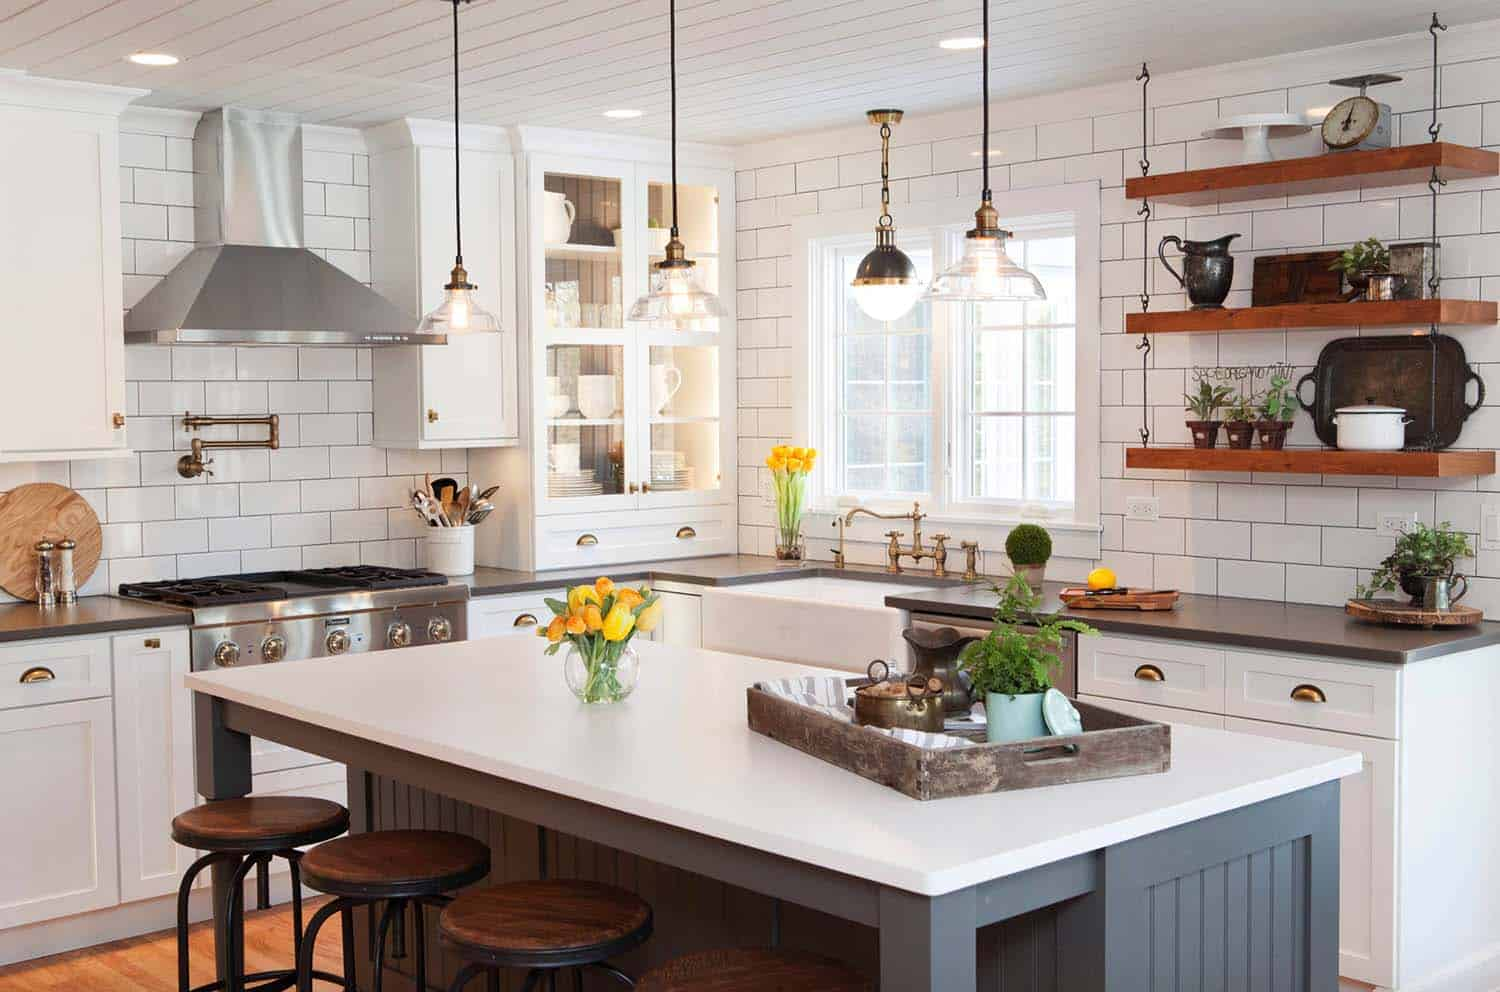 35+ Amazingly creative and stylish farmhouse kitchen ideas on natural christmas ideas, natural kitchen cabinets, natural business ideas, natural nursery ideas, natural kitchen inspiration, natural kitchen tools, natural living ideas, natural bedroom ideas, natural jewelry ideas, natural breakfast ideas, natural kitchen backsplash, natural gardening ideas, natural plumbing ideas, natural recipes, natural cleaning ideas, natural kitchen decorating, natural home ideas, natural landscape ideas, natural beauty ideas, natural before and after,